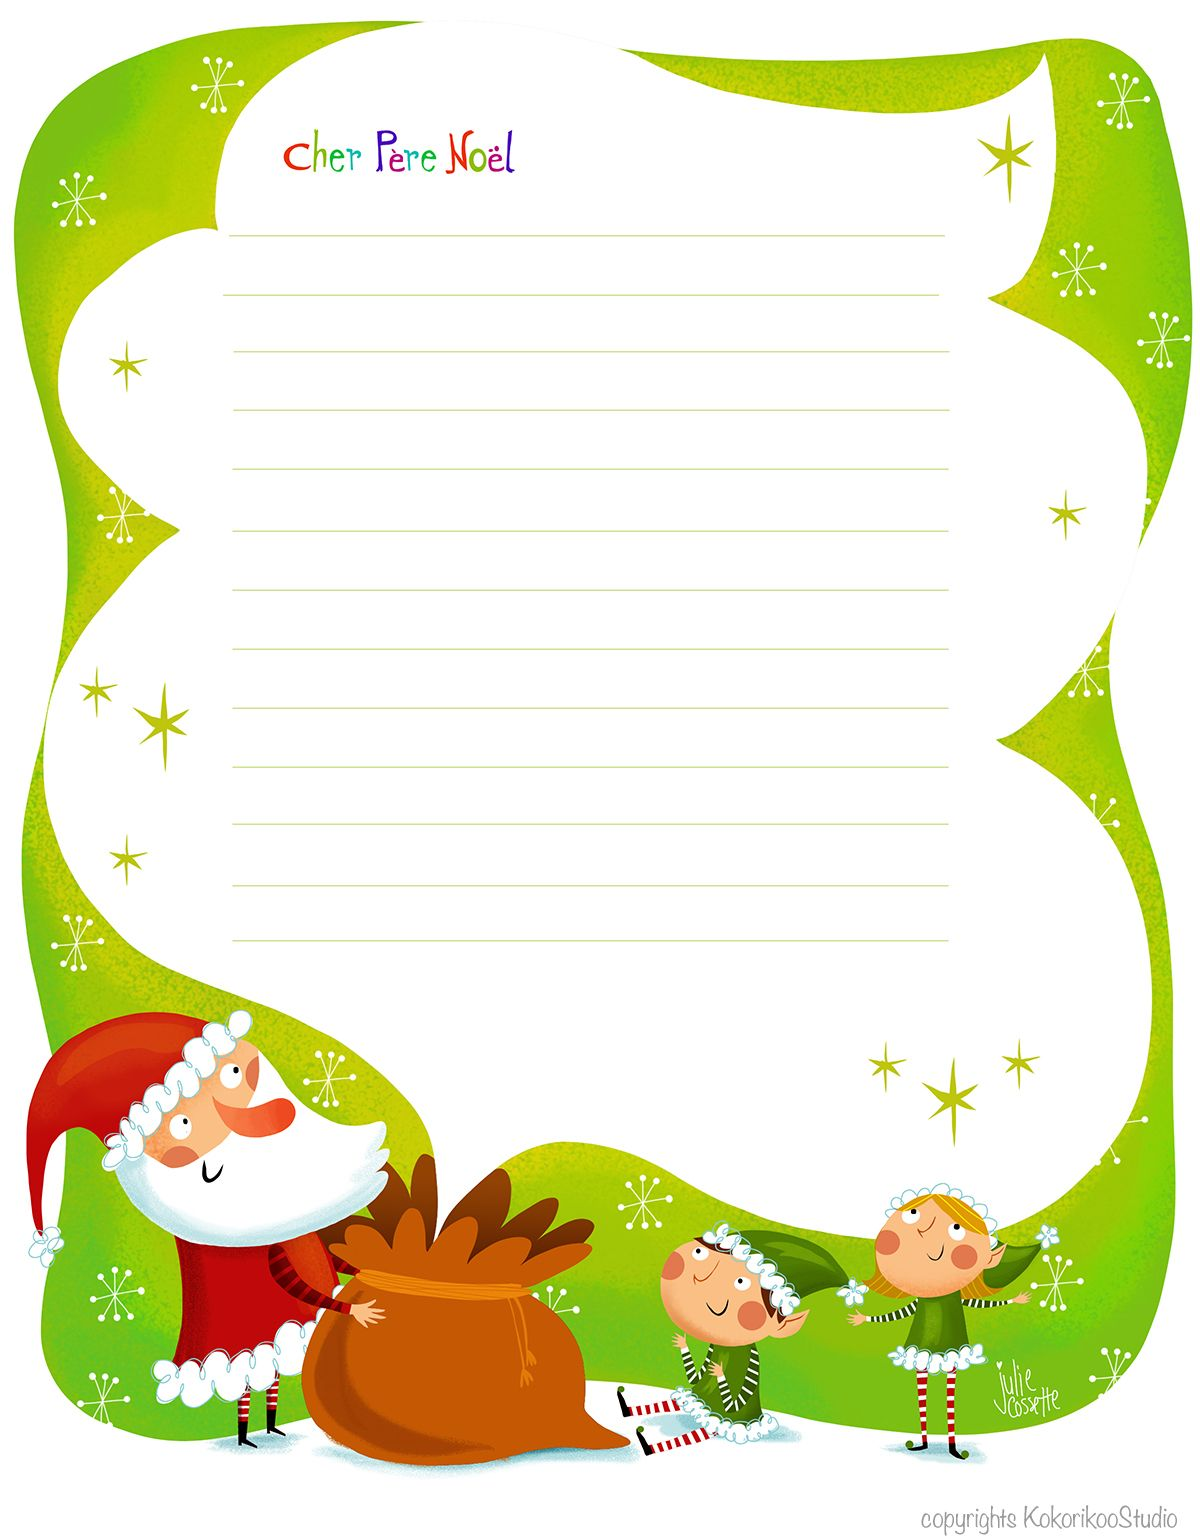 pin by shelley selvaggio on christmas pinterest christmas christmas printables and christmas letterhead